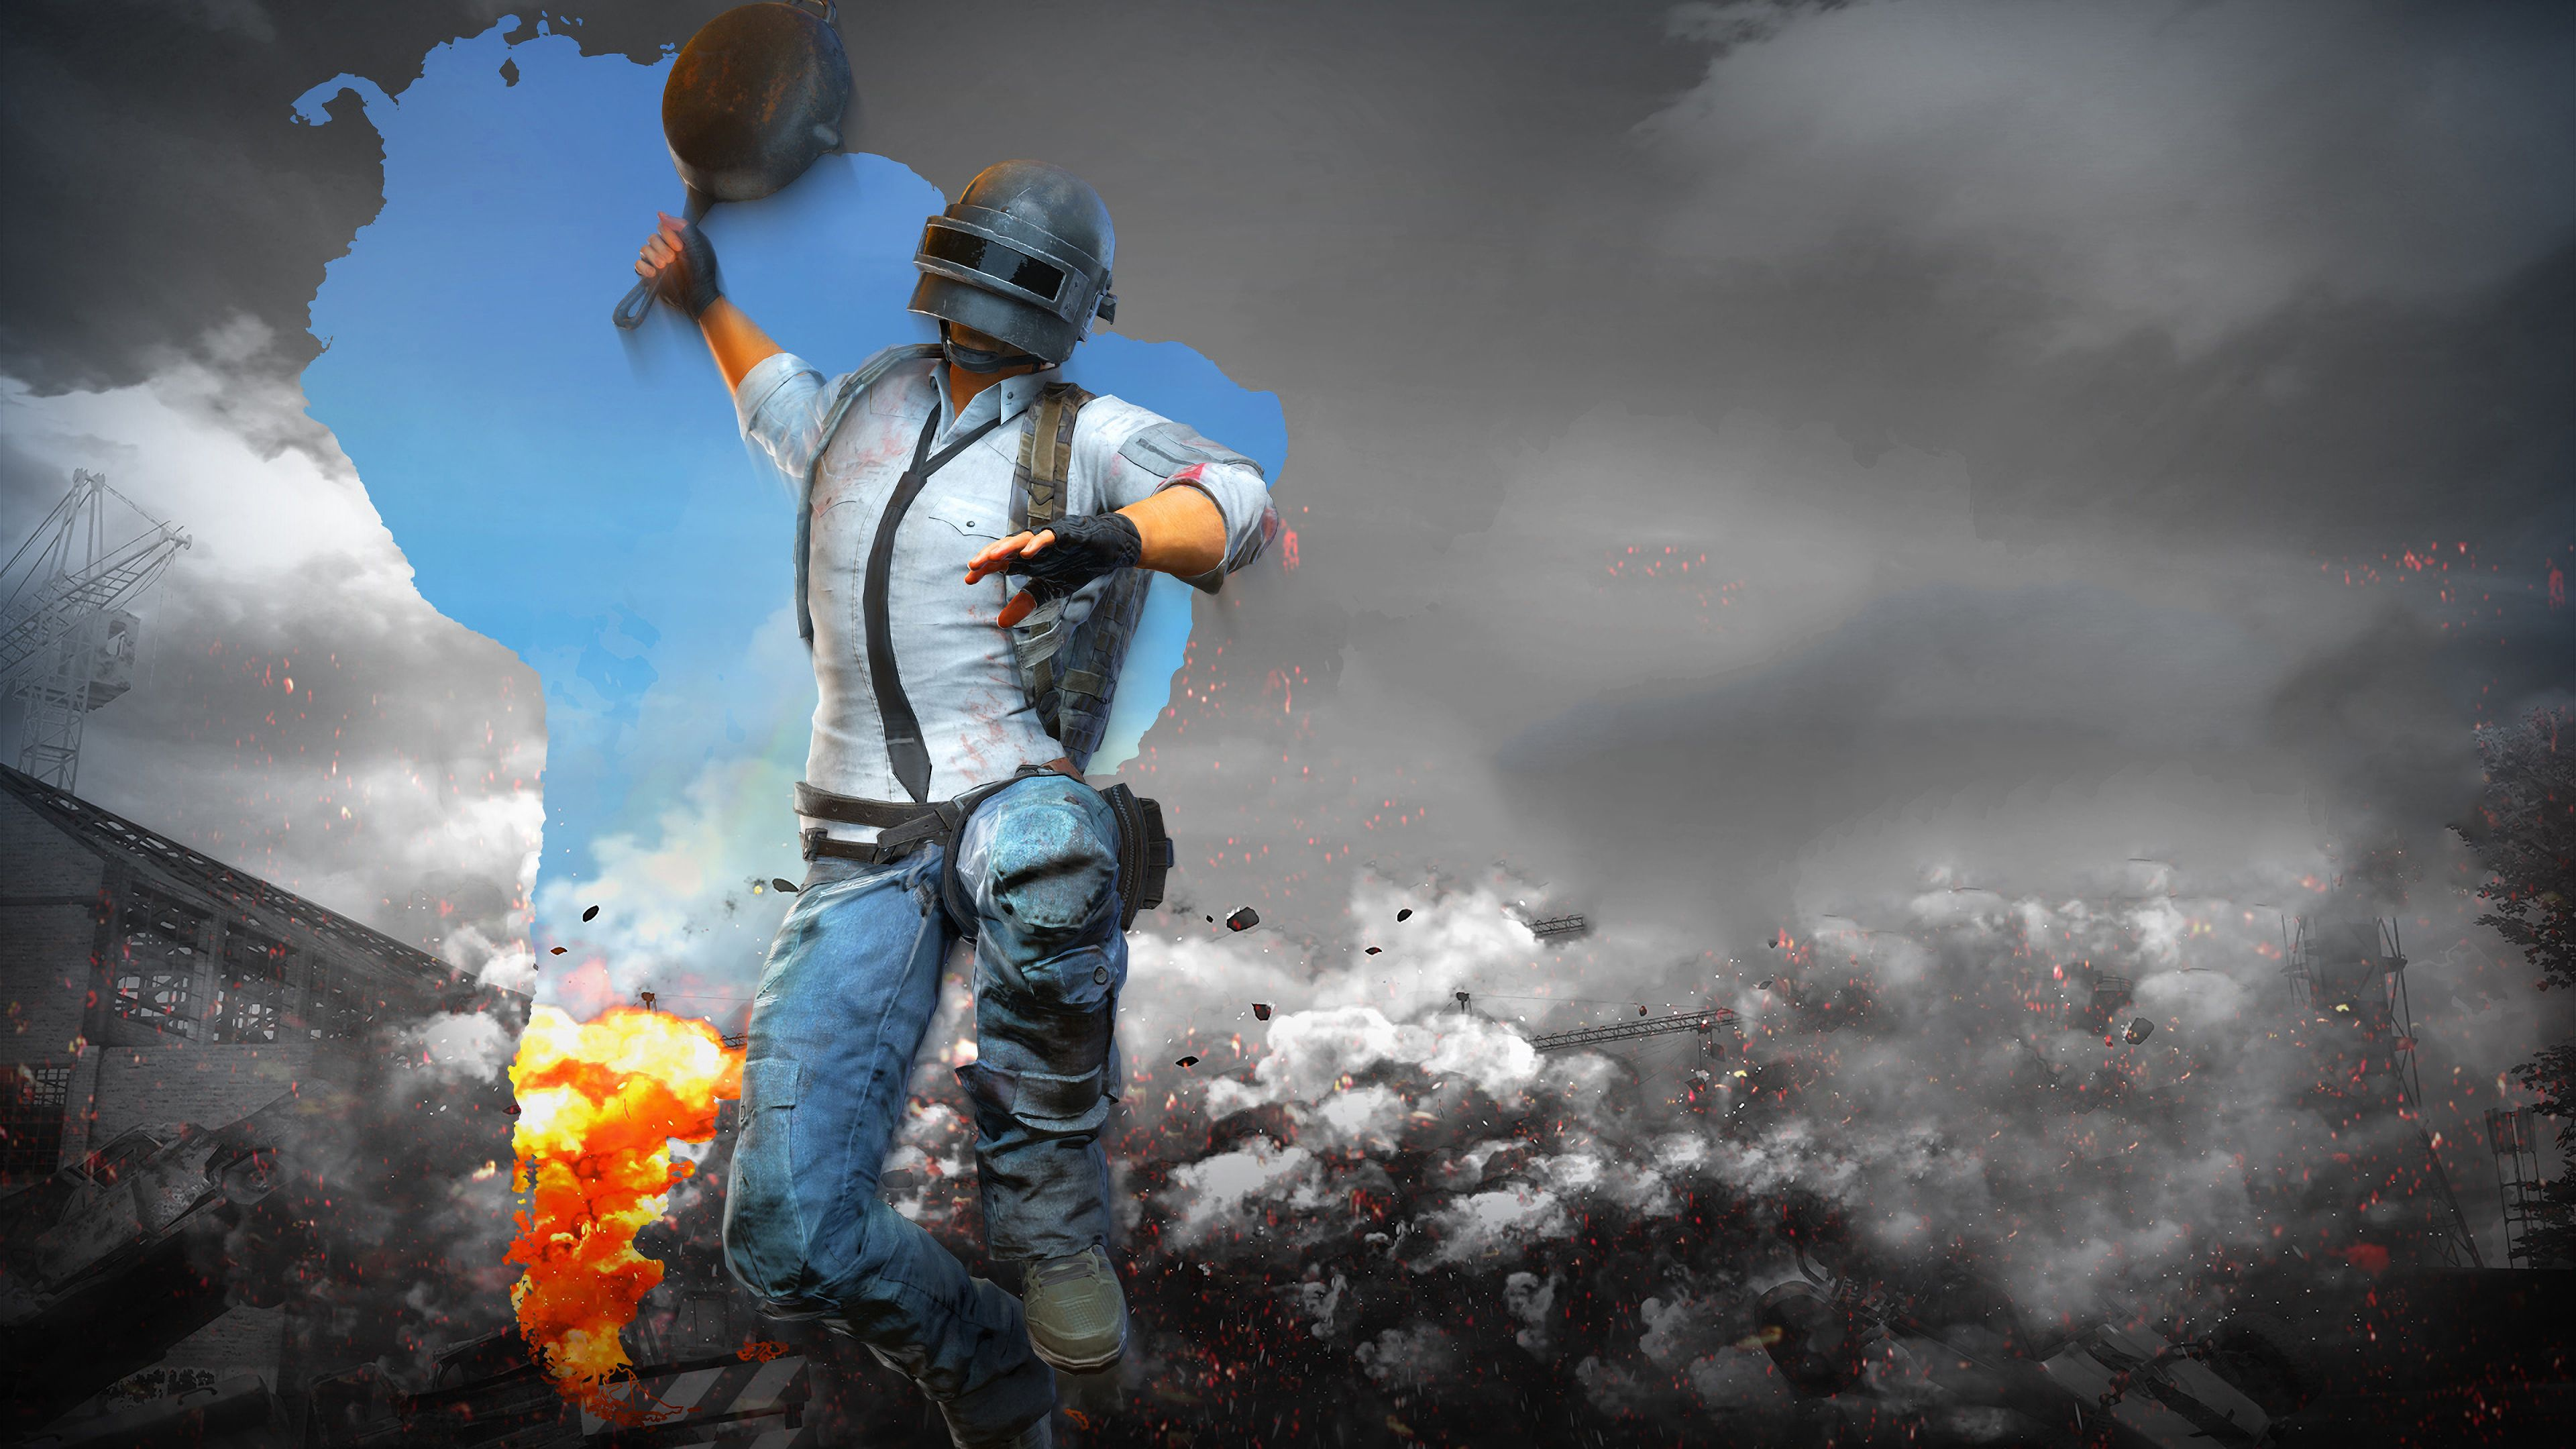 Pubg Helmet Guy 4k Pubg Wallpapers Playerunknowns: PUBG 4K Gaming Wallpapers